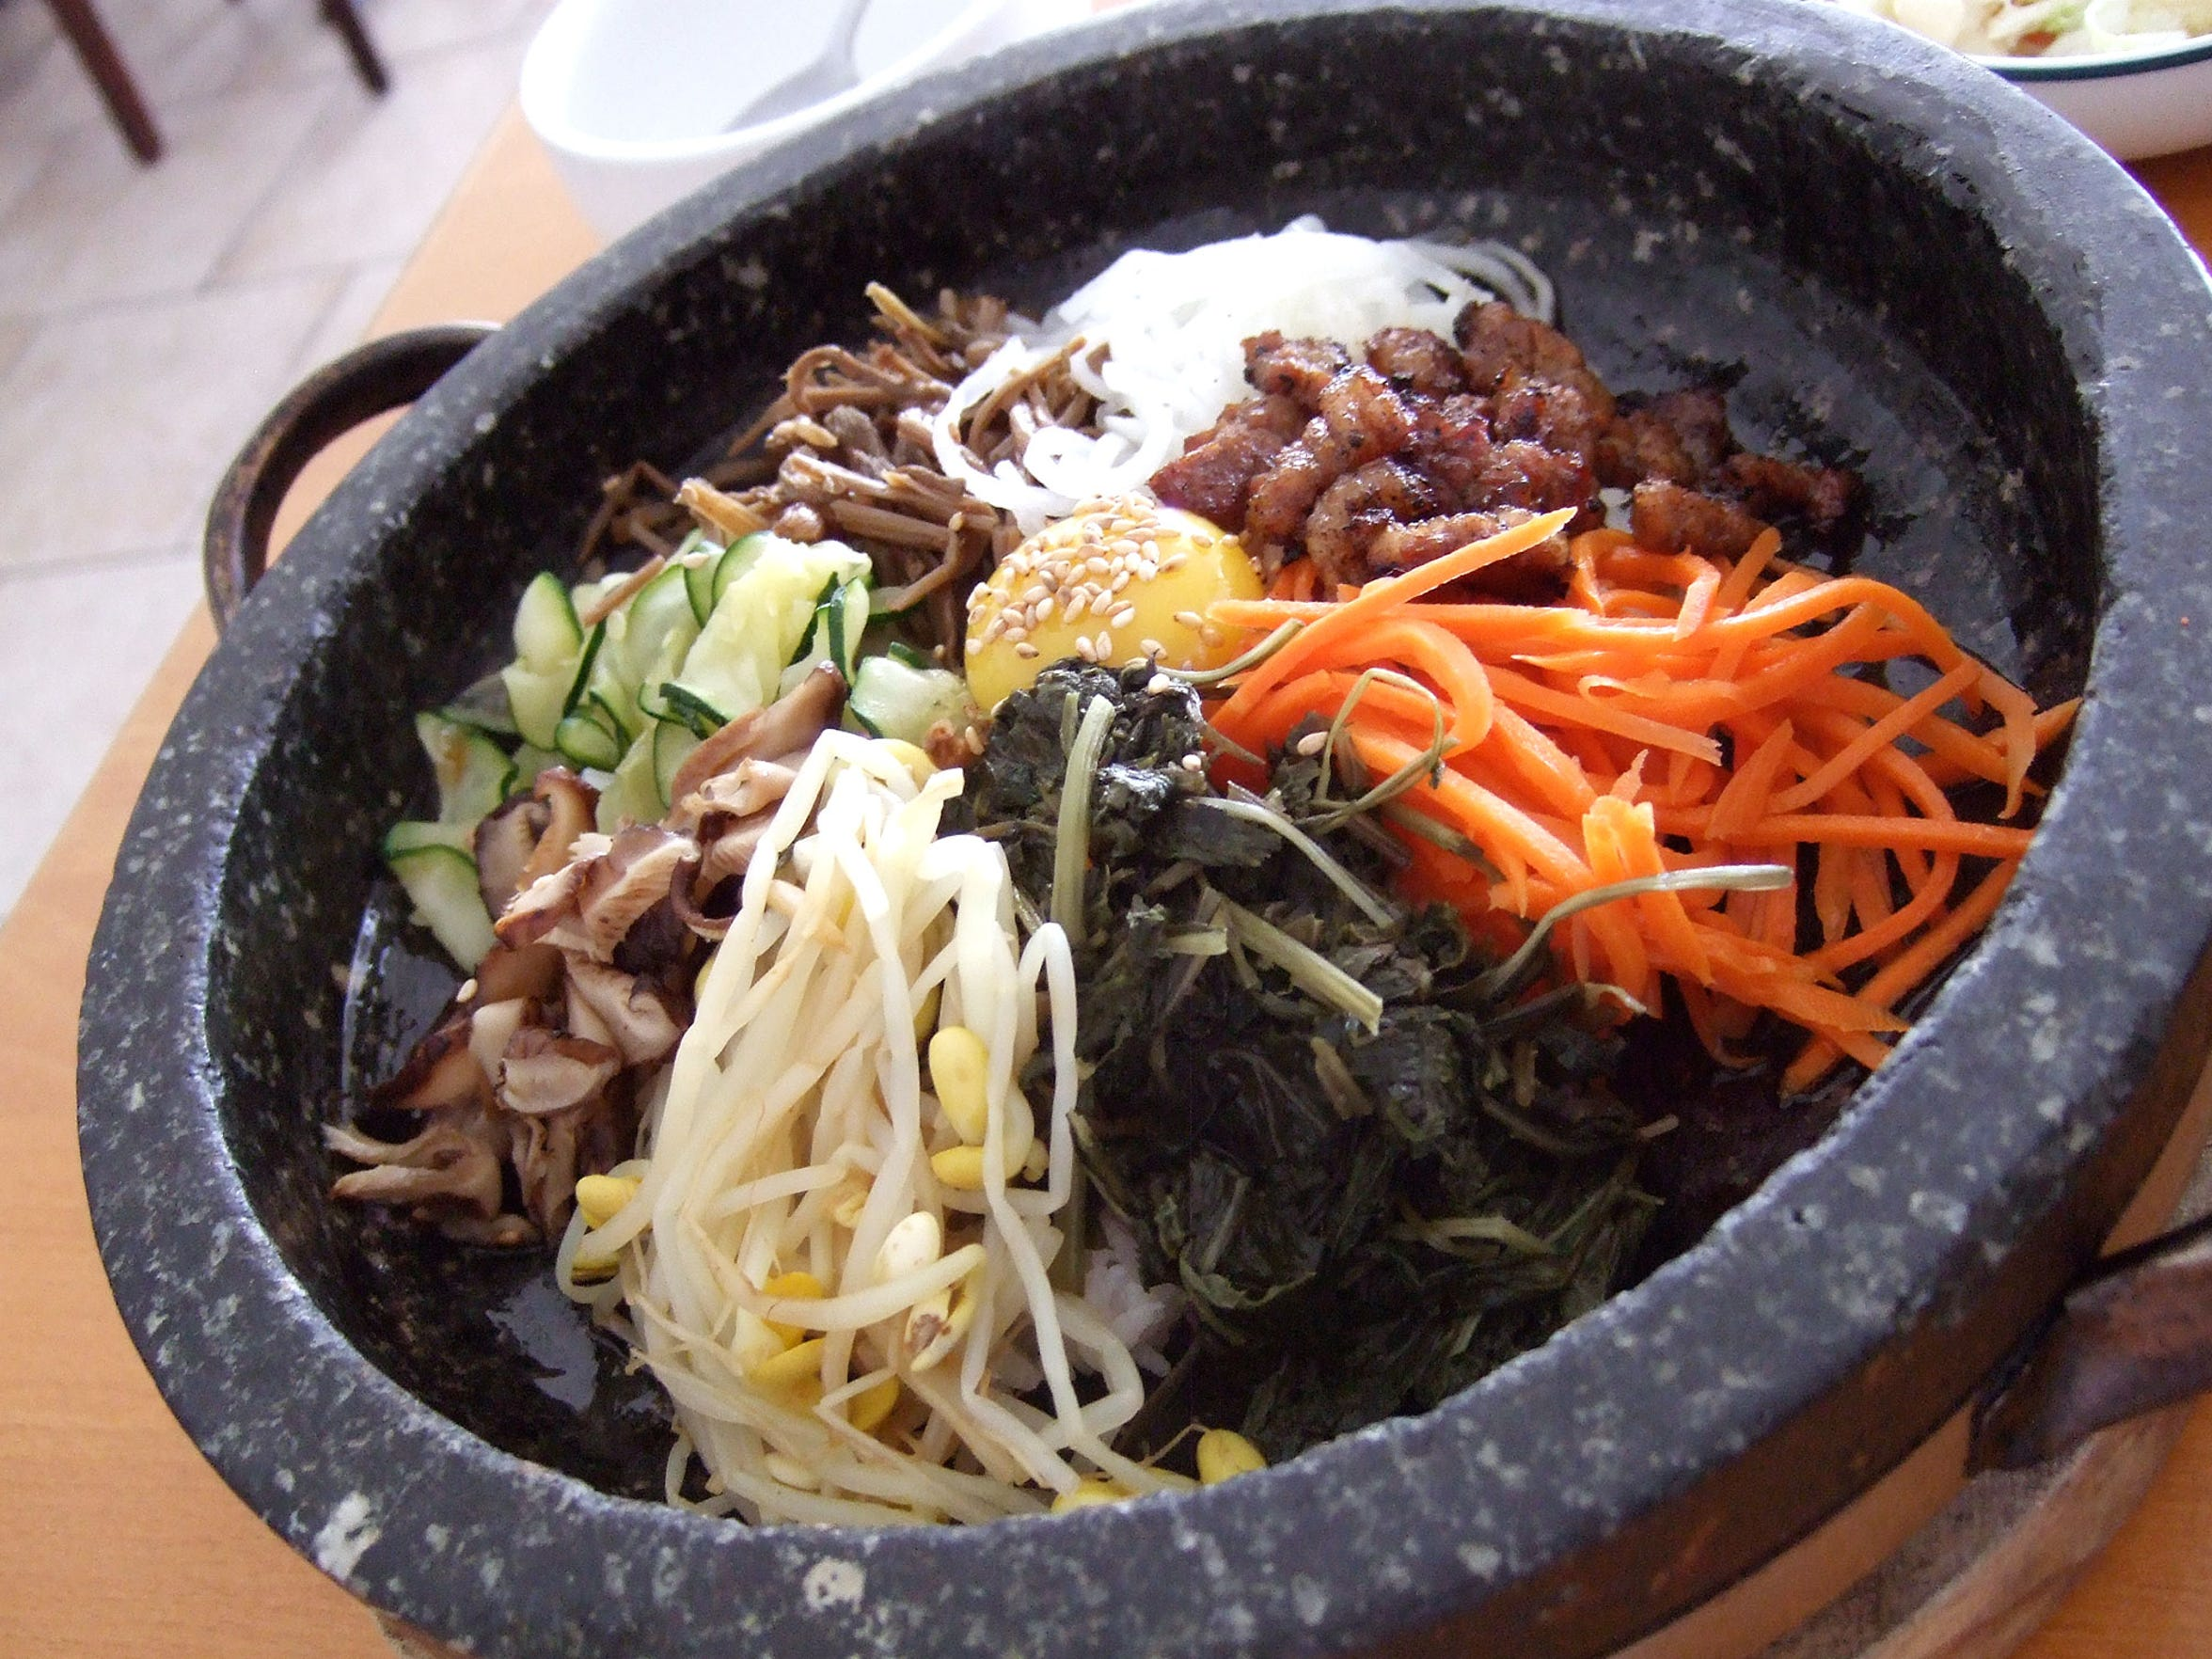 The bibimbap dish from Hodori, a restaurant serving